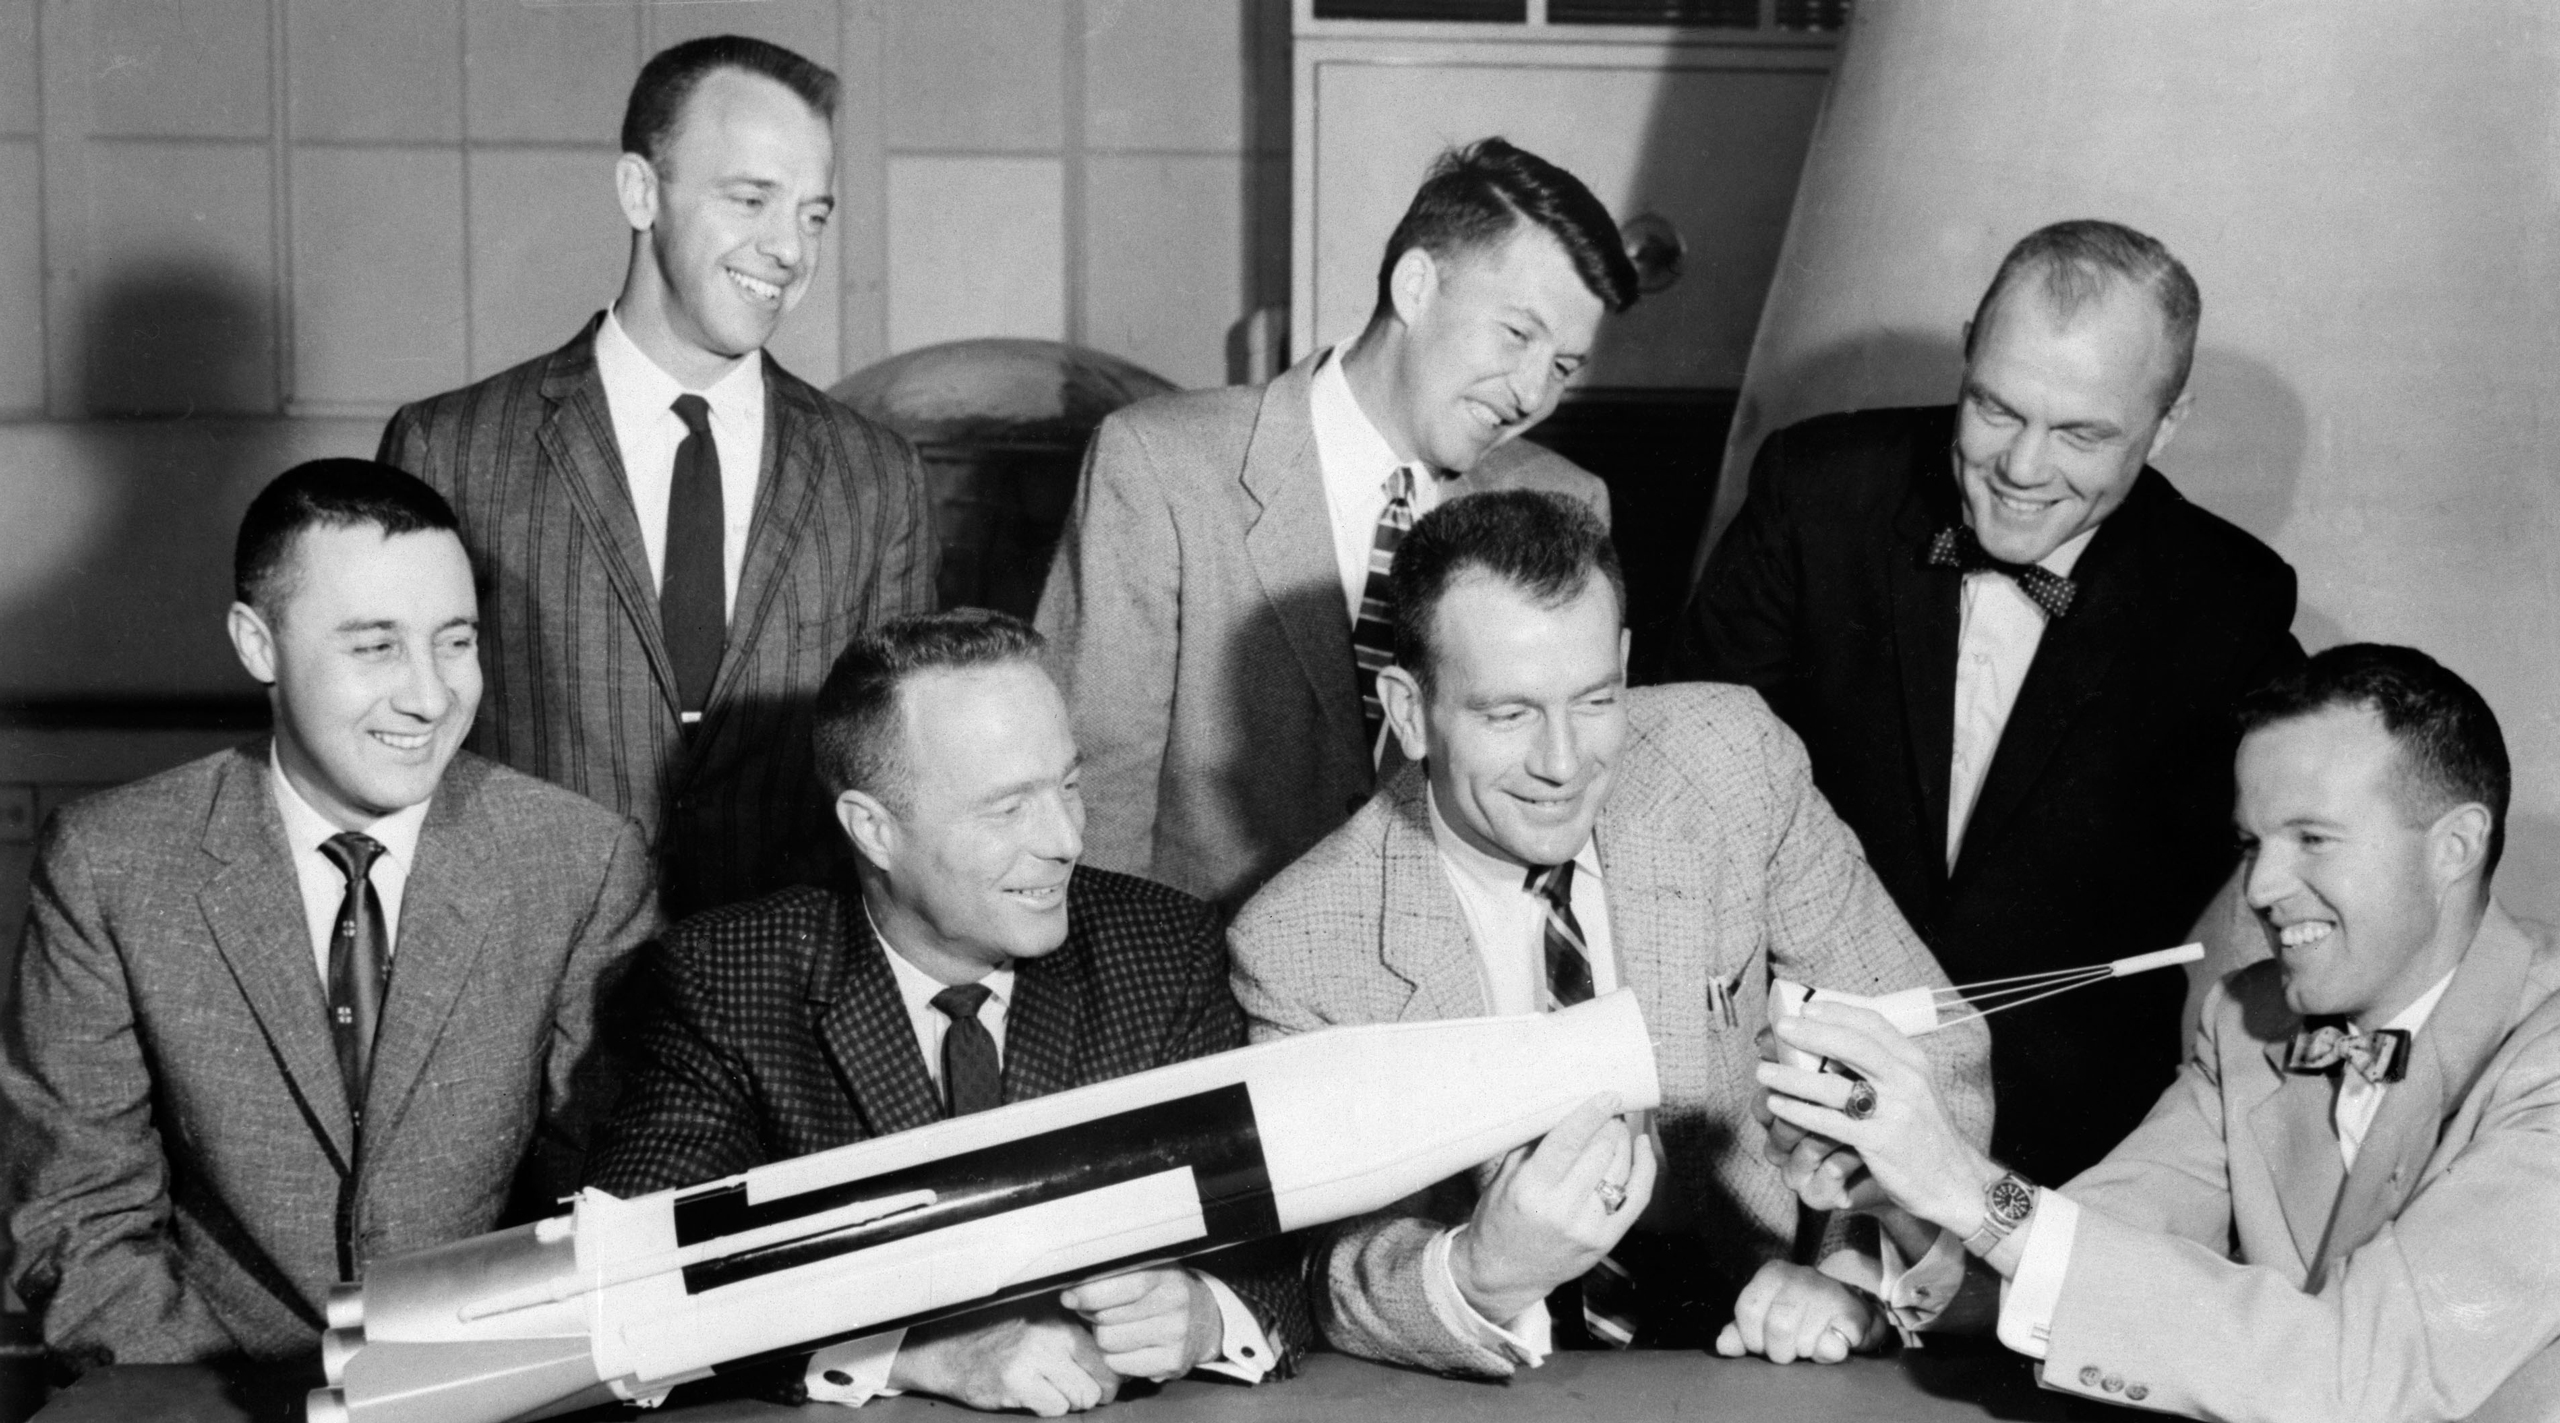 <b>The Magnificent Seven</b>                                   The original seven Mercury astronauts examine a rough model of the Mercury-Atlas rocket in 1959. Back row, from left: Al Shepard, Wally Schirra and John Glenn; front row, from left: Gus Grissom, Scott Carpenter, Deke Slayton and Gordon Cooper.